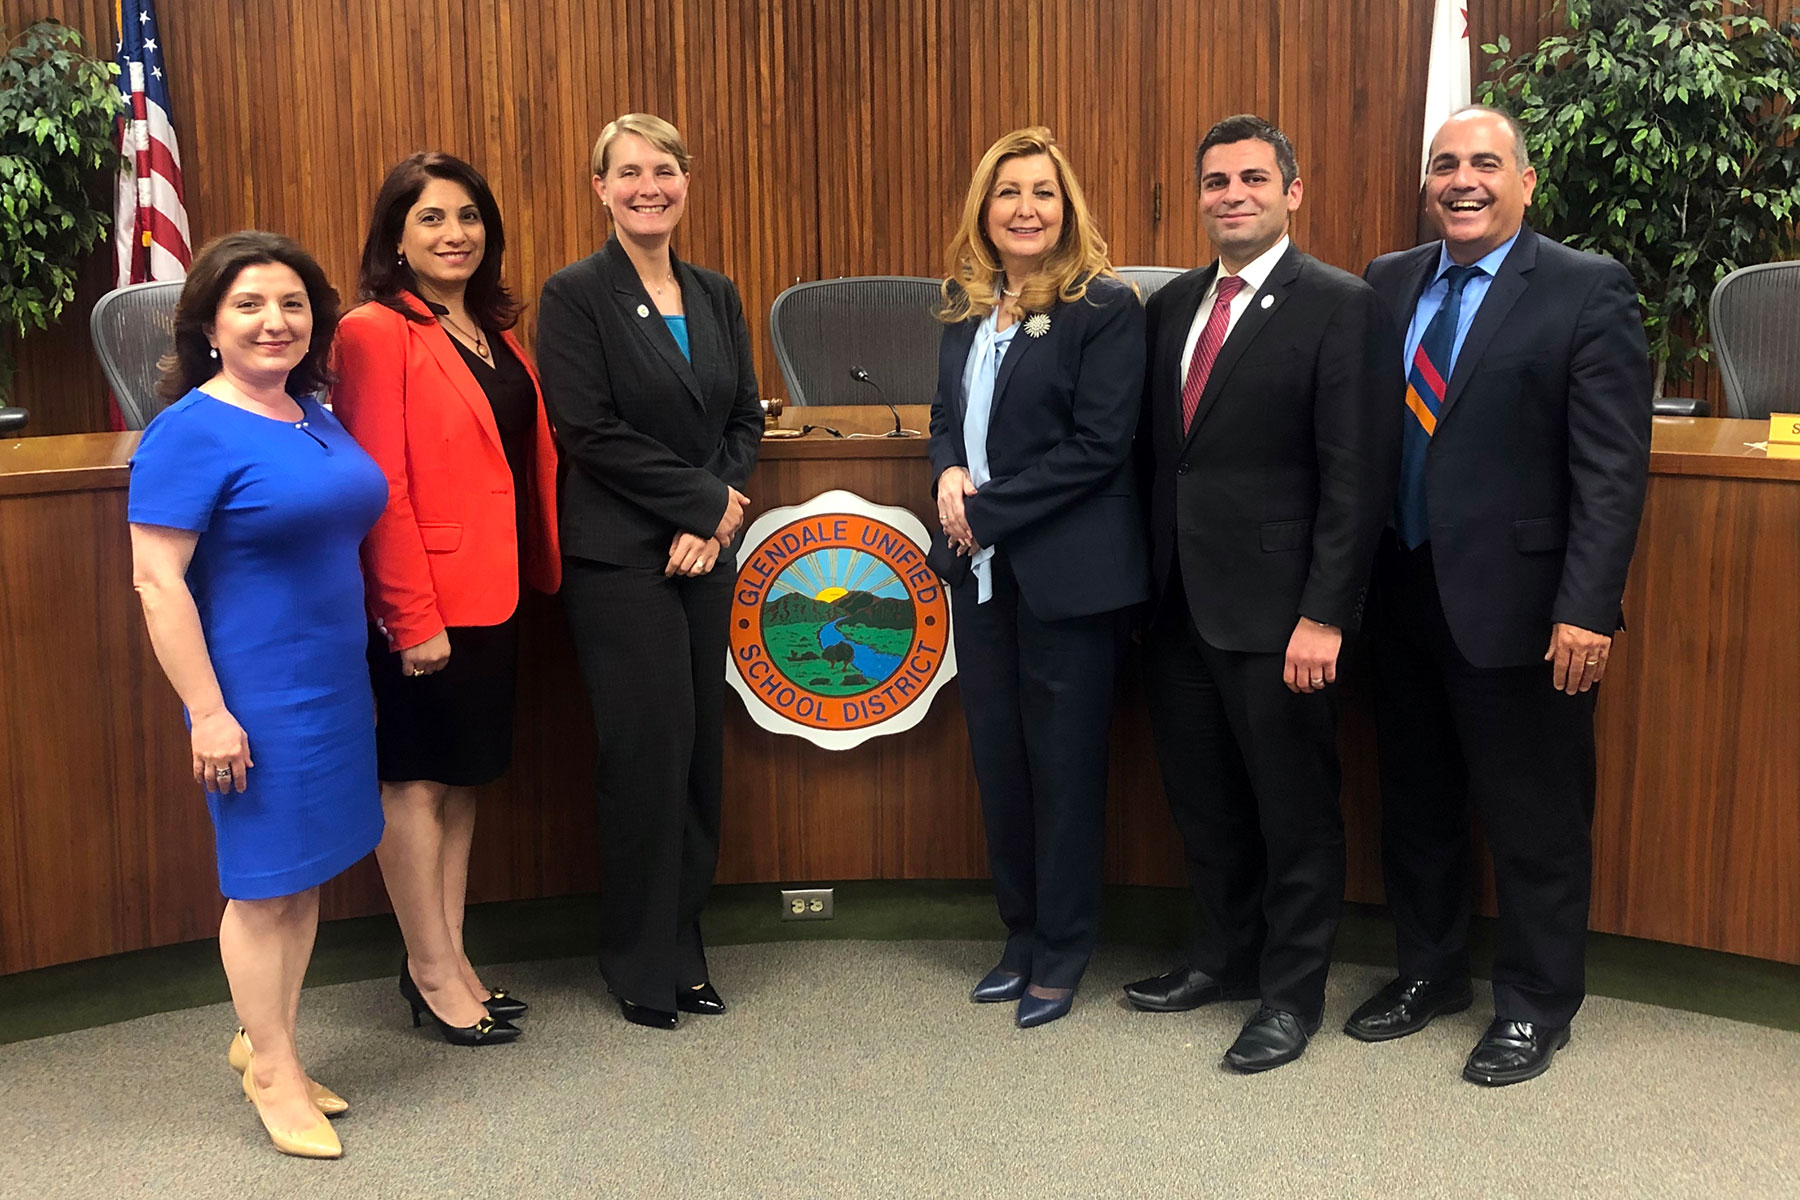 The GUSD Board of Education closed campuses for the start of the school year.